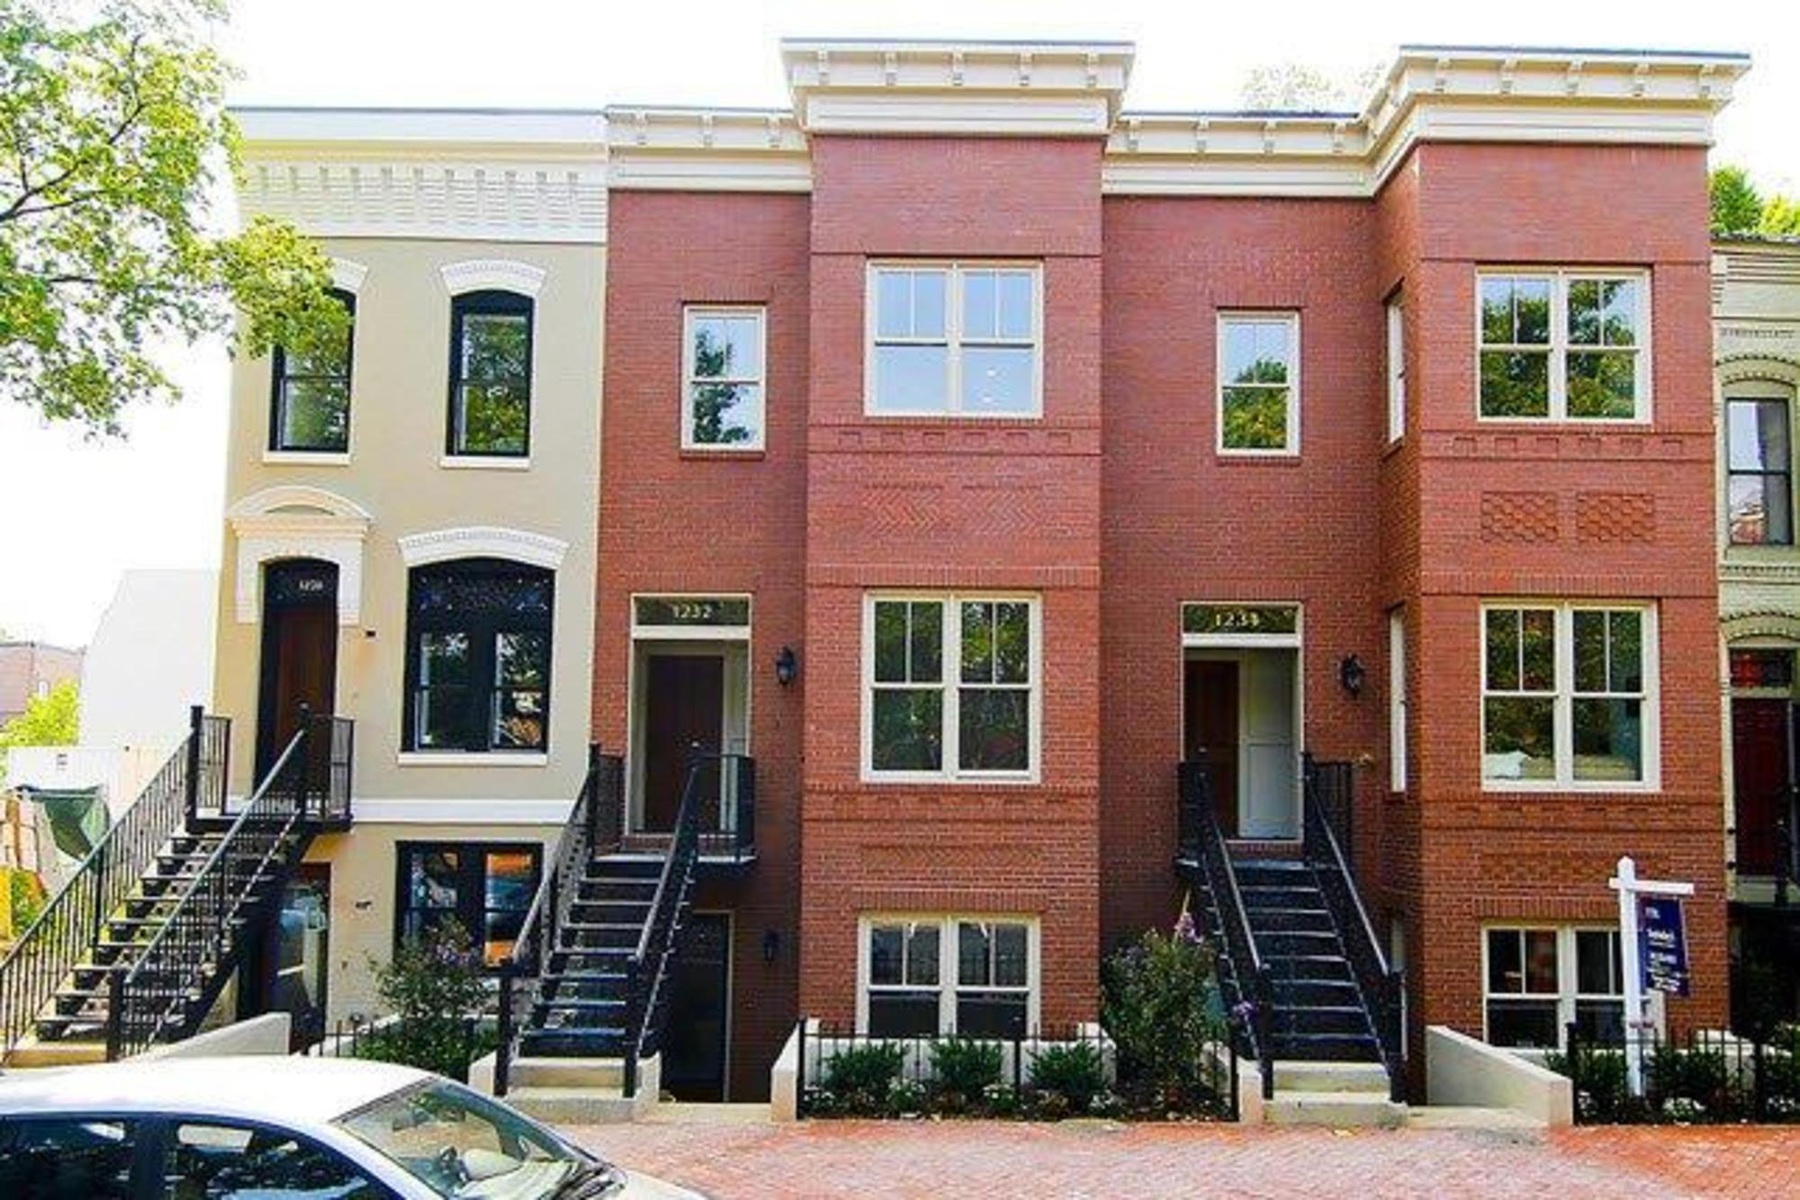 Property For Sale at 1234 4th Street Nw 1, Washington